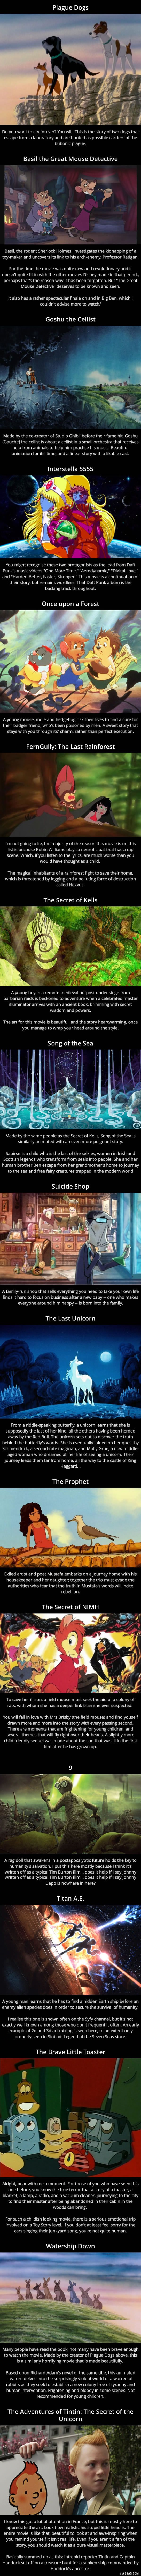 Underappreciated Or Overlooked Animated Movies Movies Good